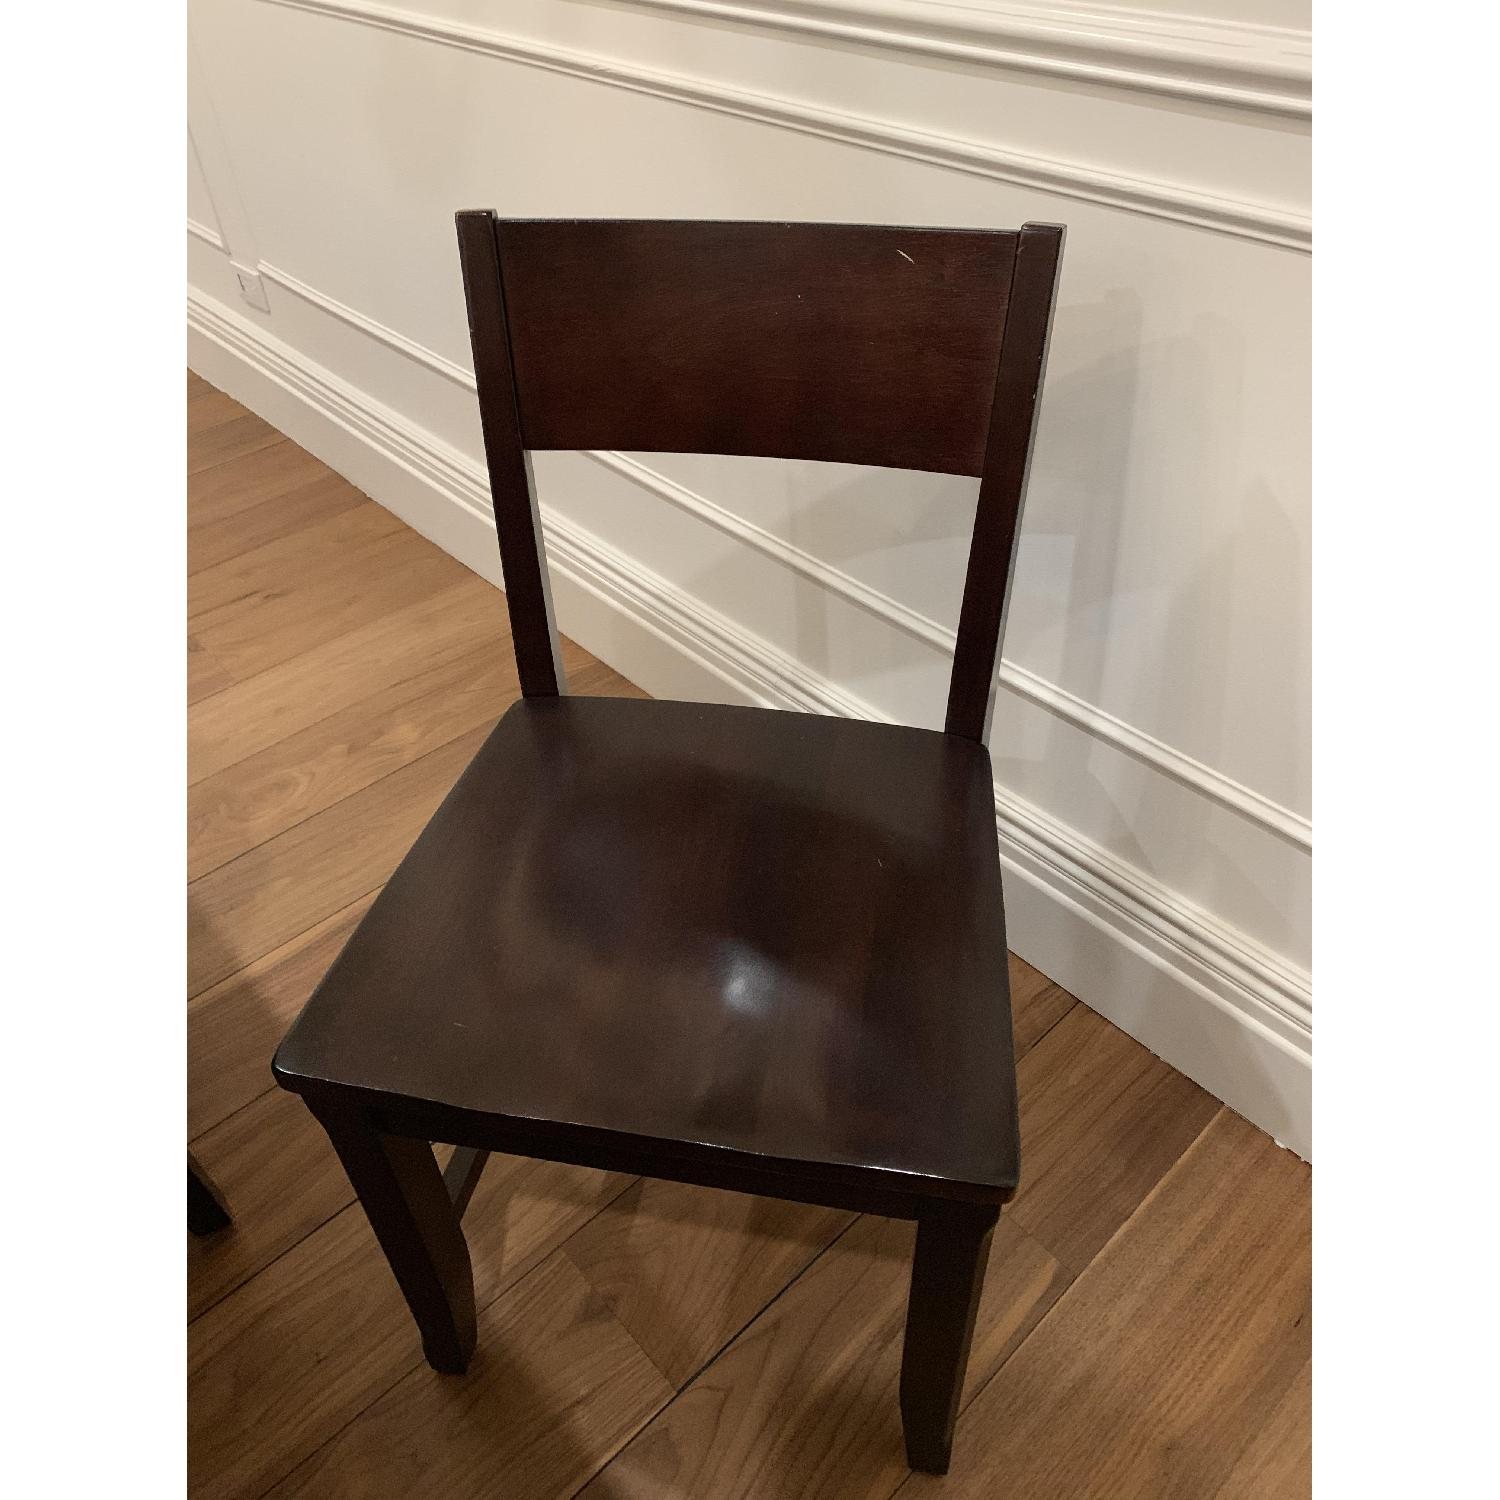 Montreal Espresso Wood Chairs - image-7